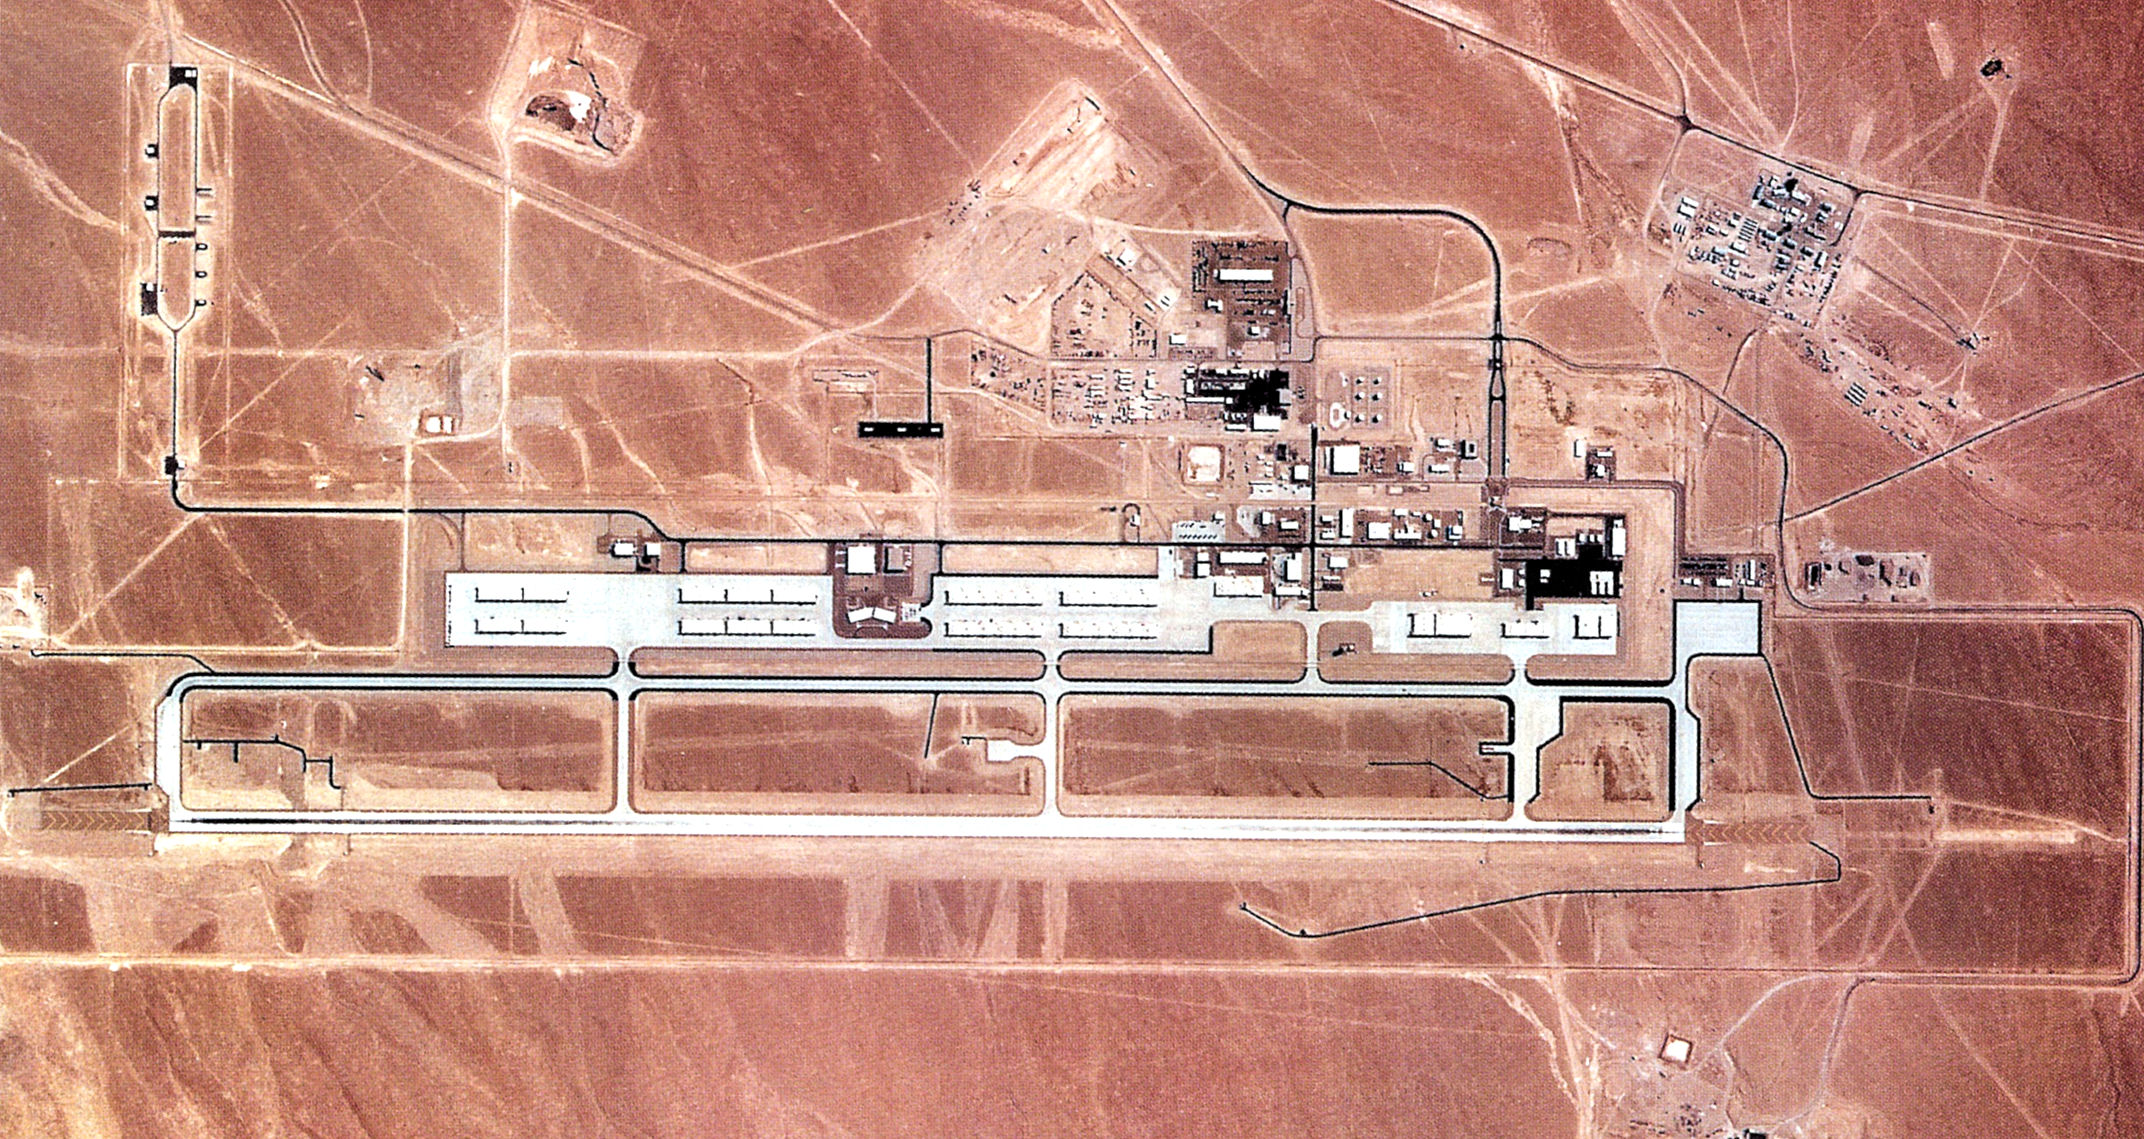 Tonopah (NV) United States  city photos gallery : Tonopah Test Range Airport 1990 Wikimedia Commons